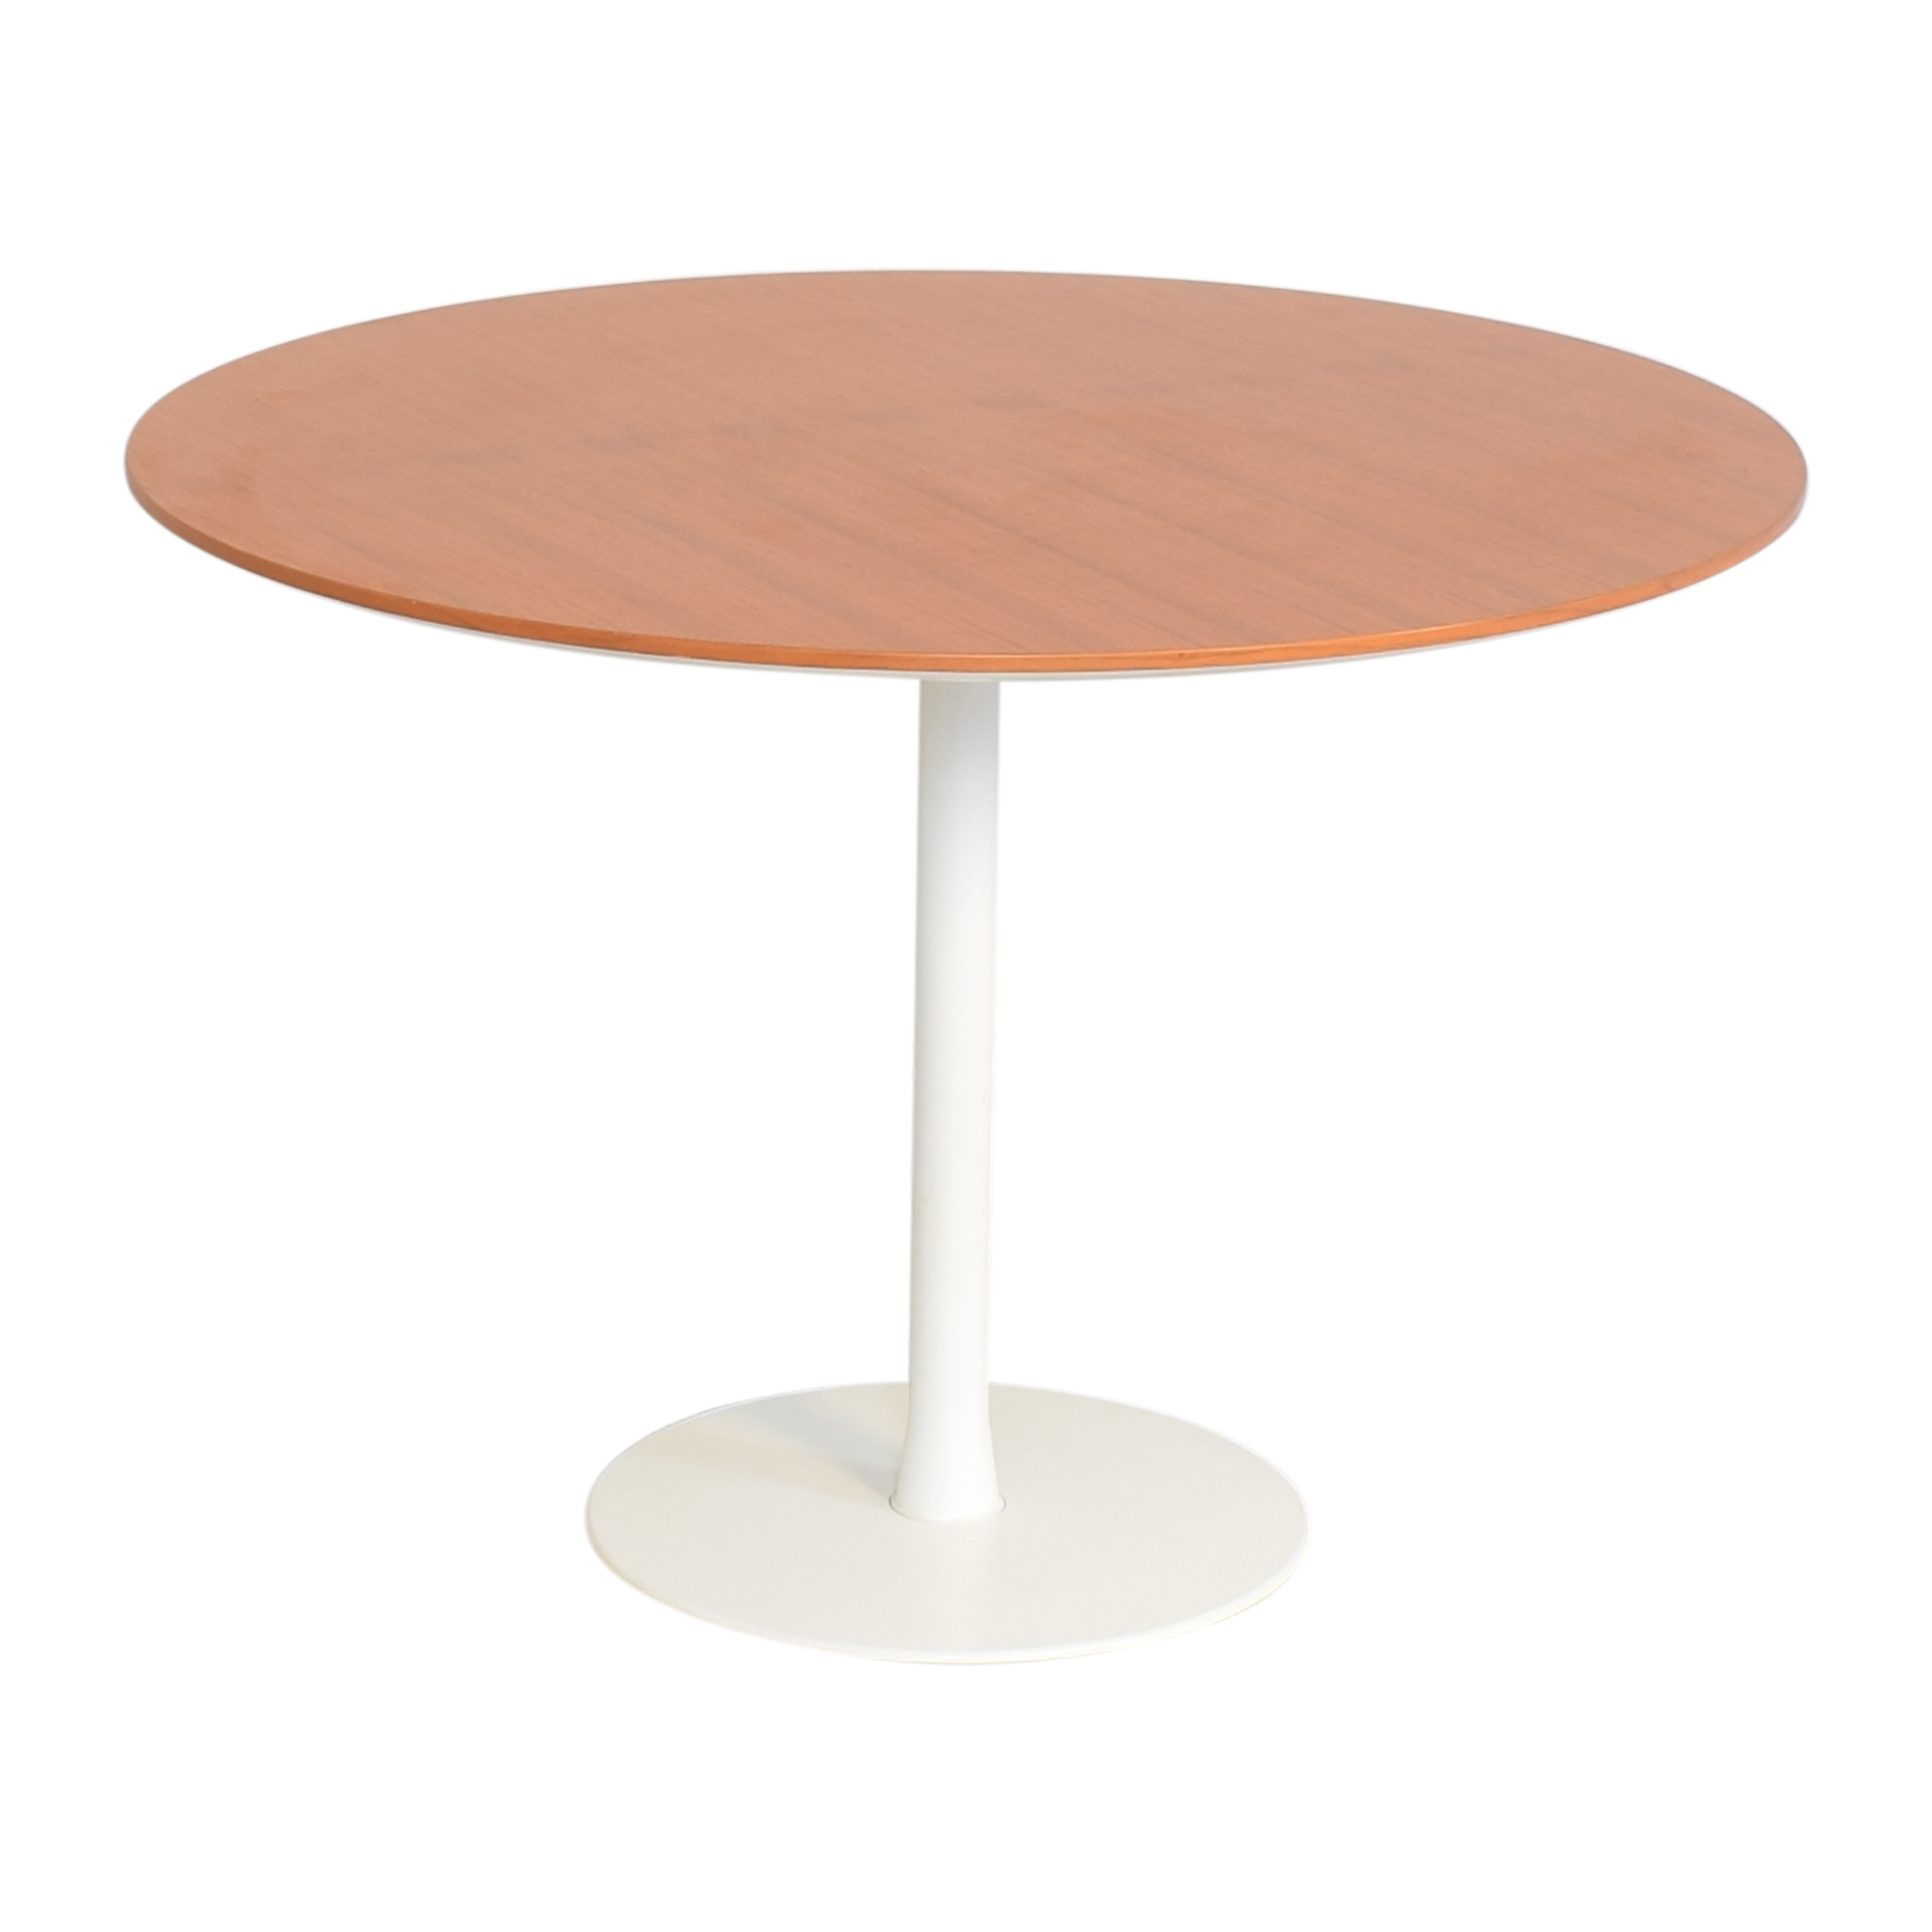 Round Top Pedestal Dining Table brown, white